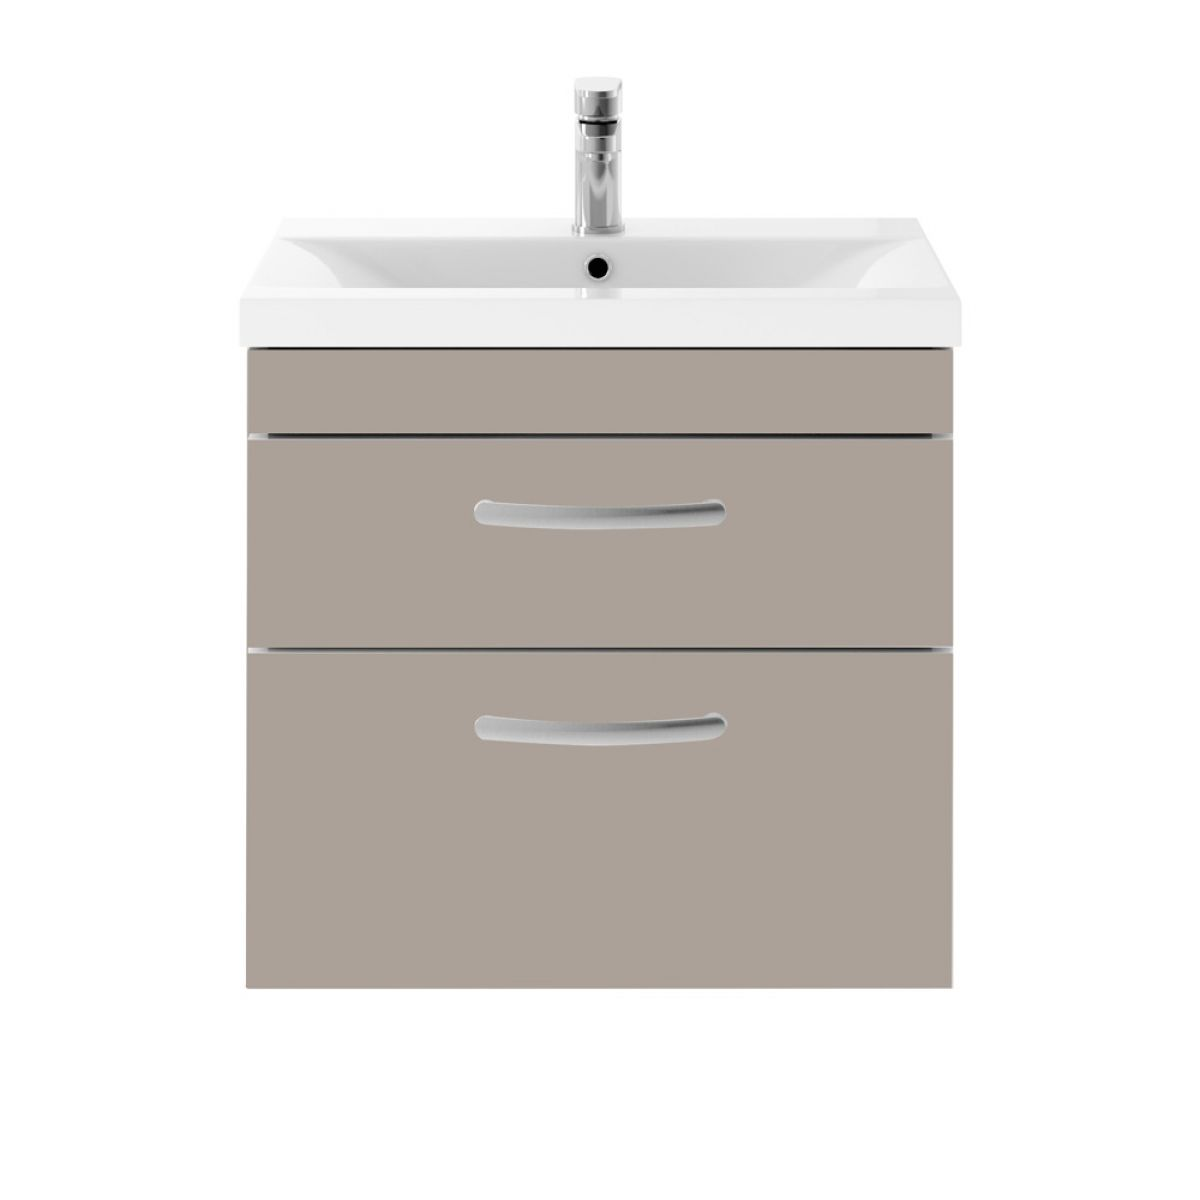 Premier Athena stone grey 2 Drawer Wall Hung Vanity Unit 600mm with Mid Edge Basin